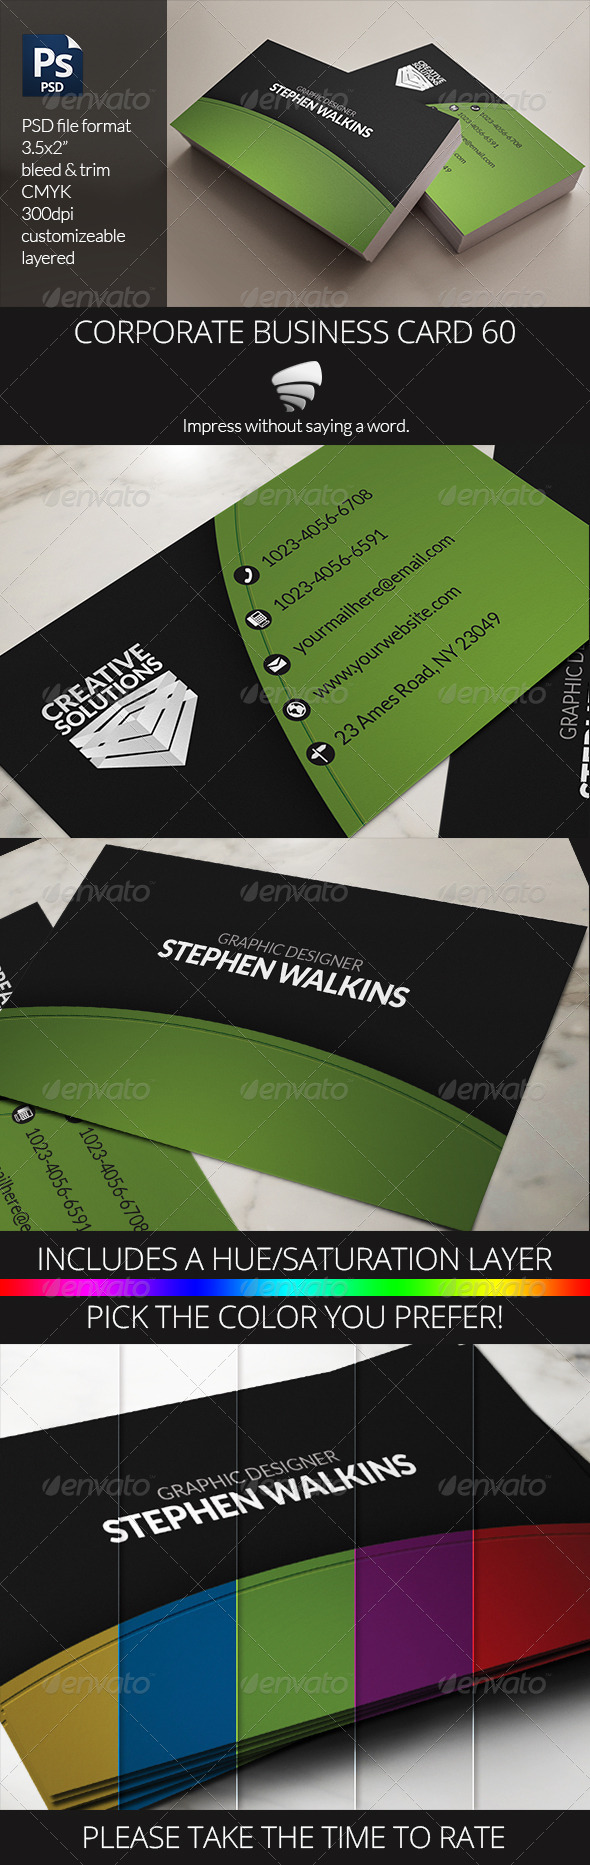 GraphicRiver Corporate Business Card 60 6452312